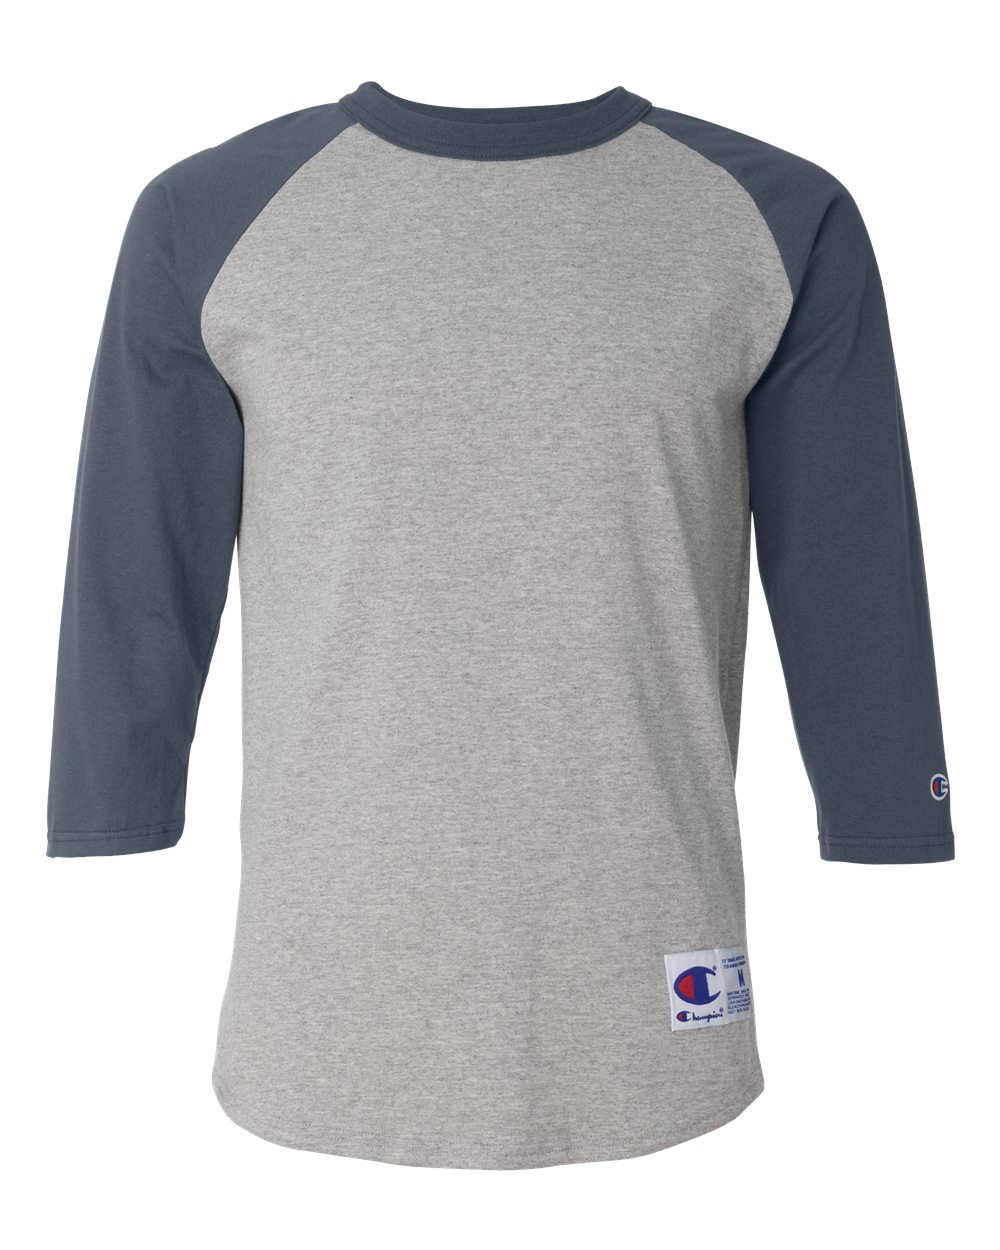 Champion T137 Raglan Baseball T Shirt Needen Usa Kaos Polos Grey Solid